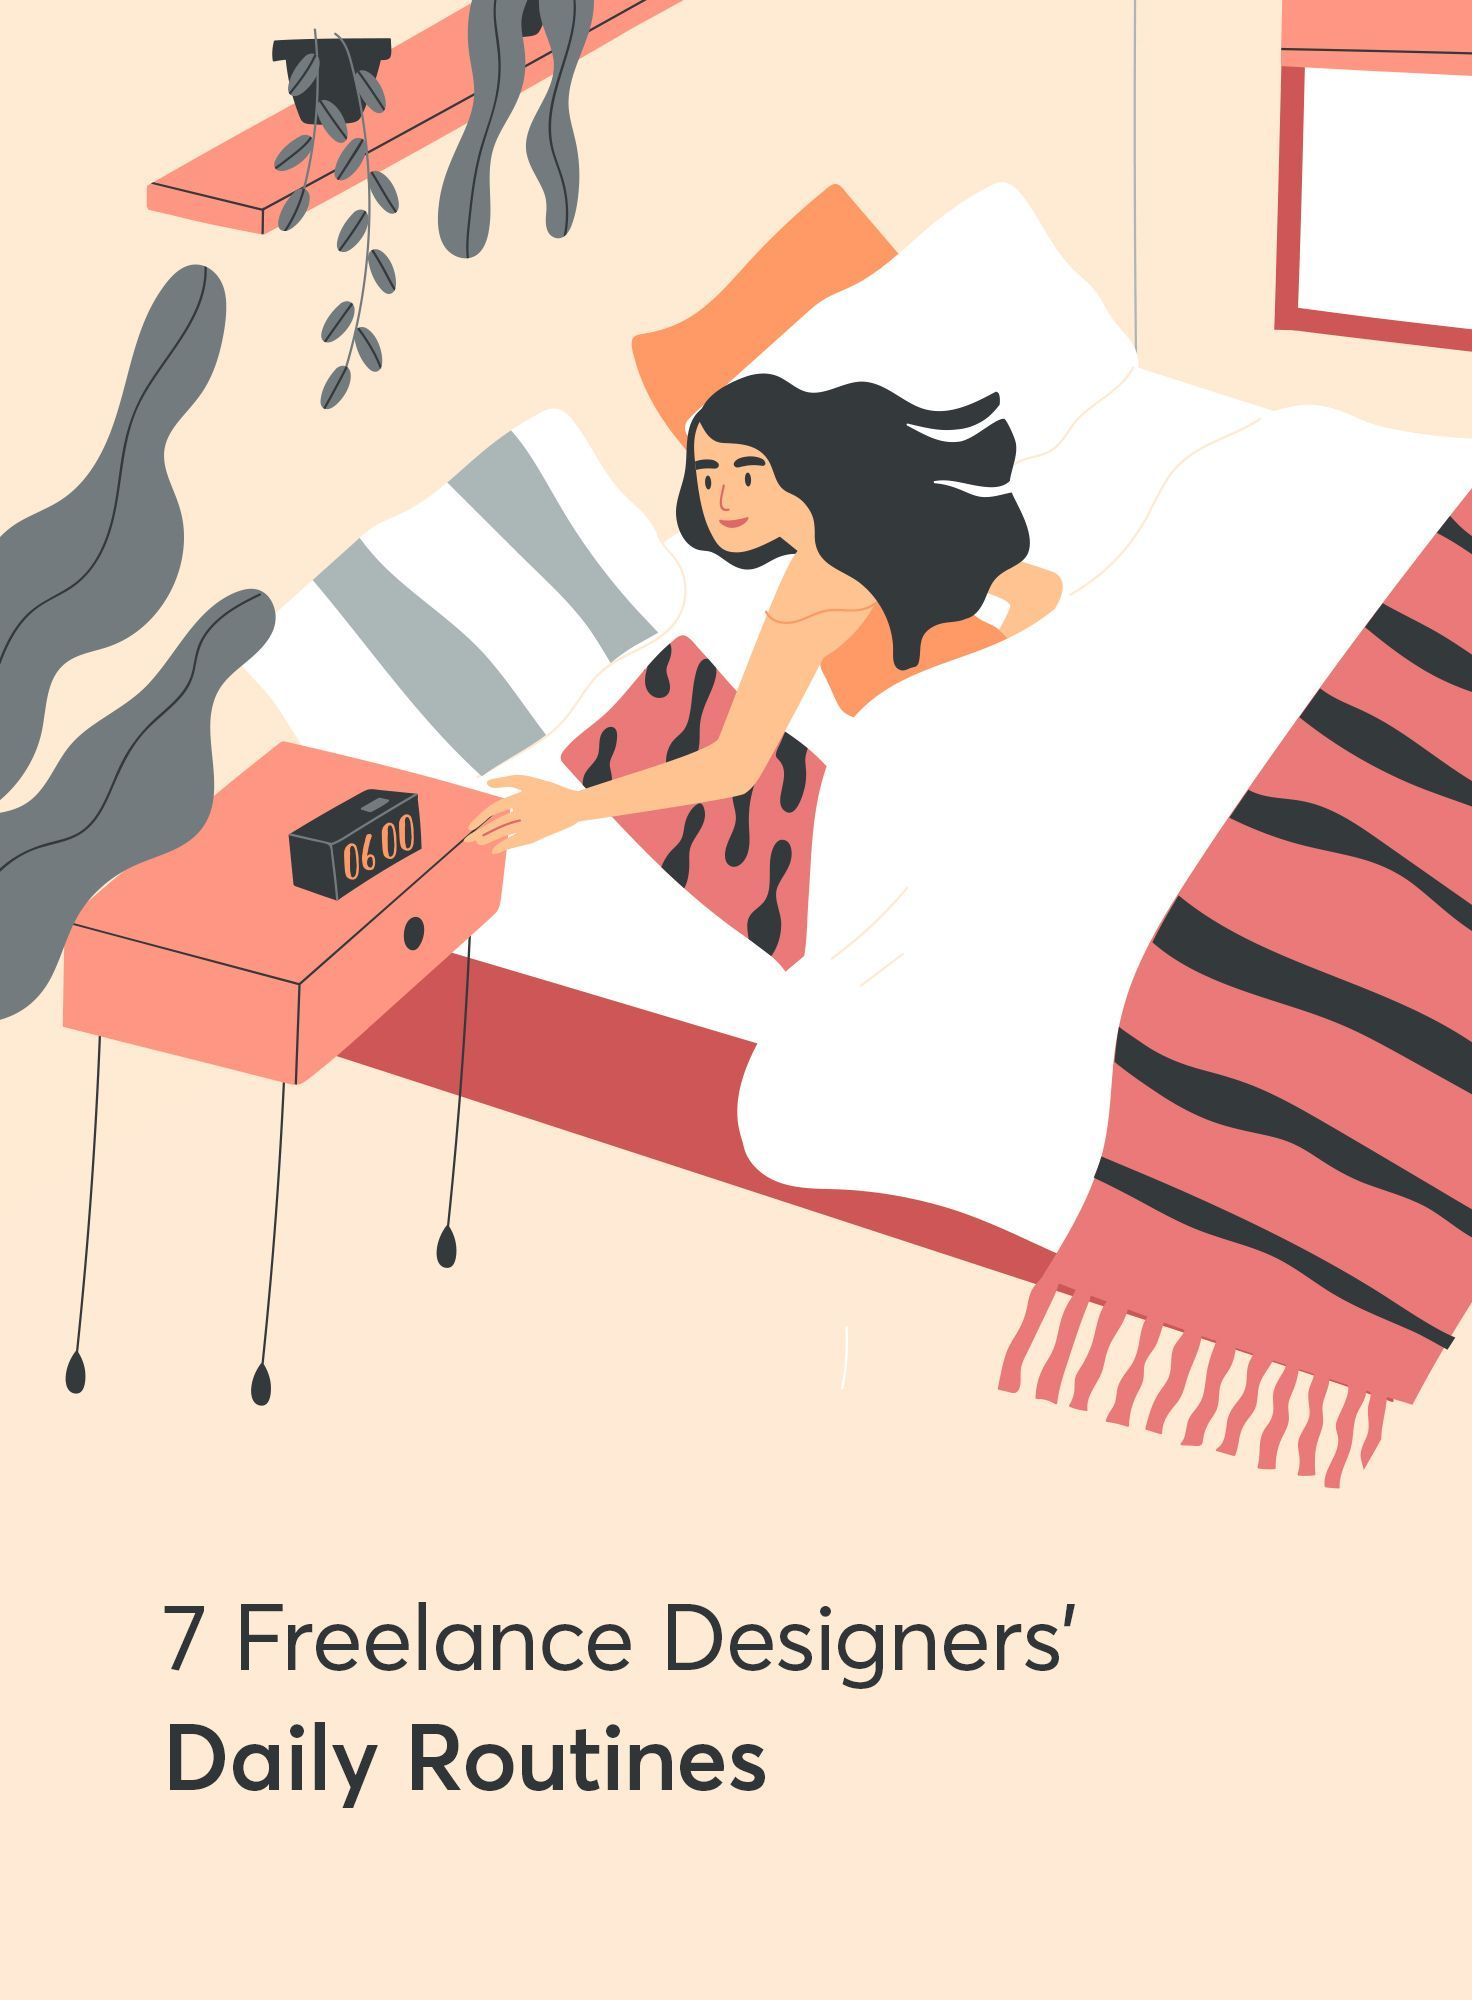 7 Freelance Graphic Designers Share Their Daily Routines In 2020 Freelance Graphic Design Graphic Design Activities Article Design